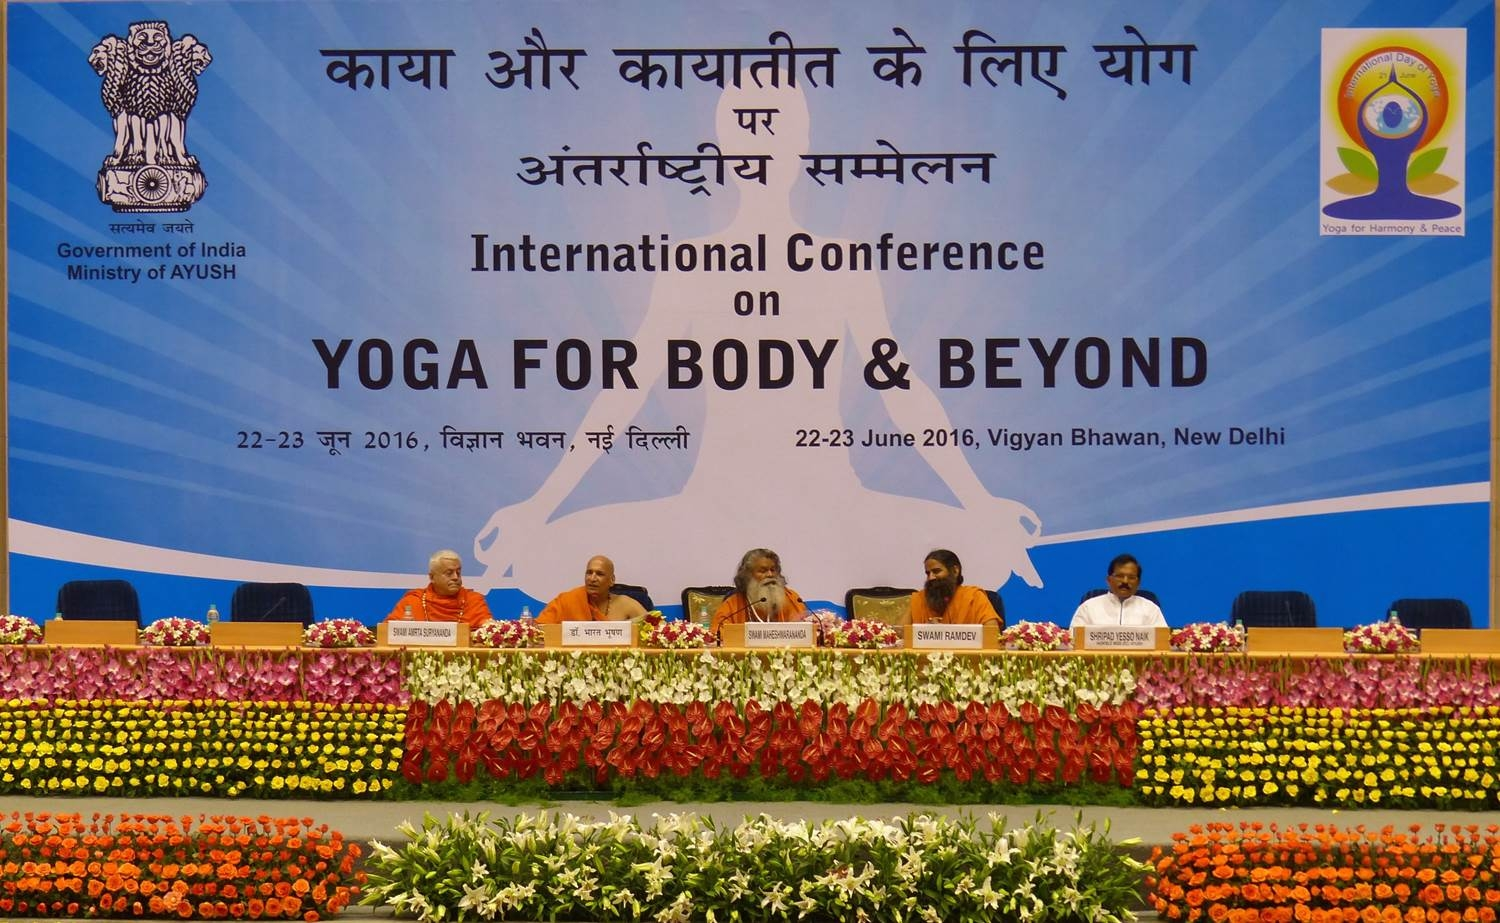 International Day of Yoga / IDY 2016 - International Conference - New Dillí, India - 2016, June 22nd and 23rd